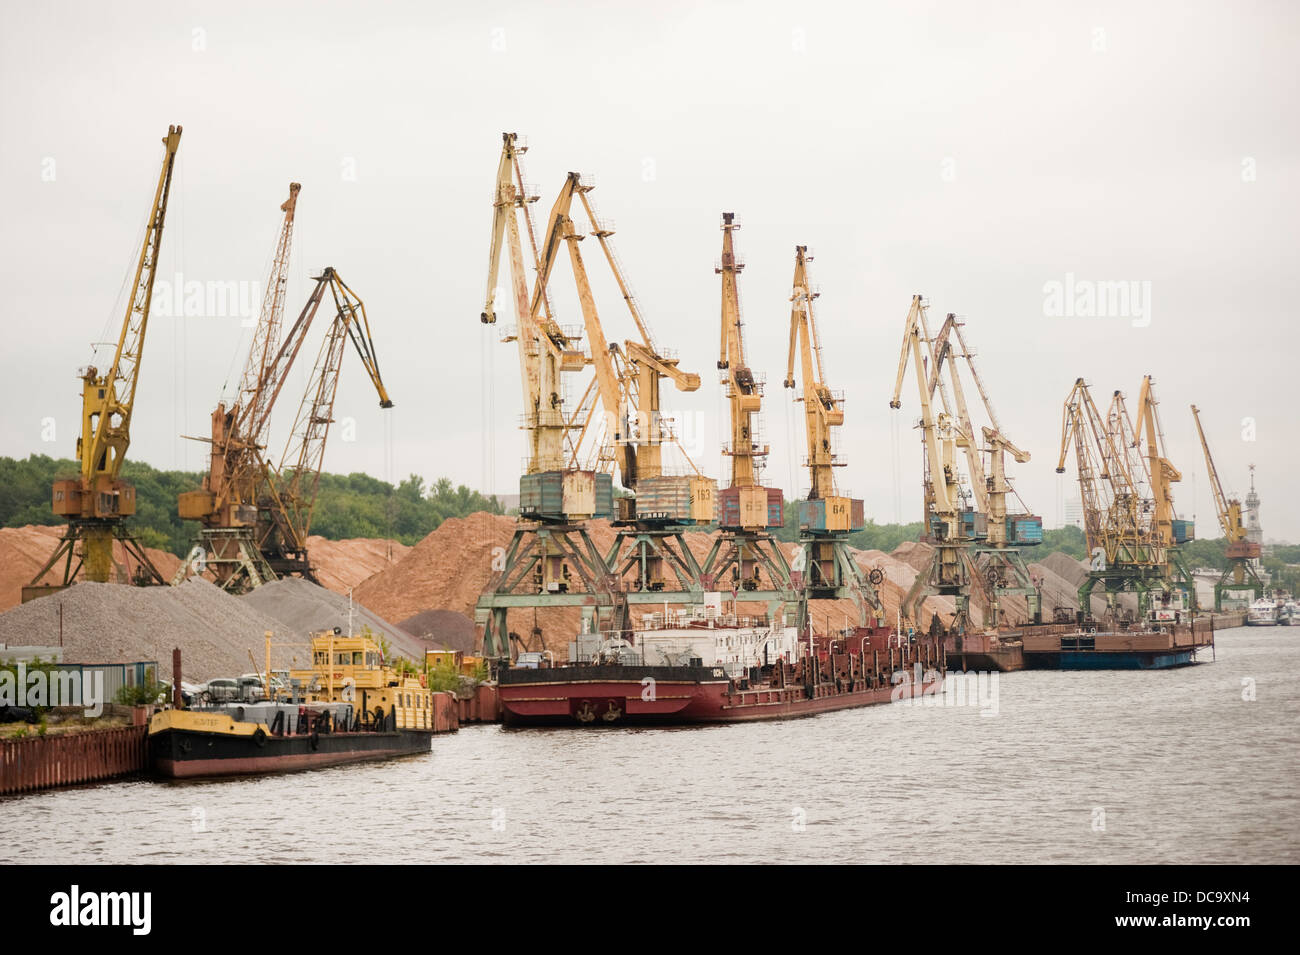 Sand and gravel cargo port along Moscow Canal and ships loaded Russia - Stock Image